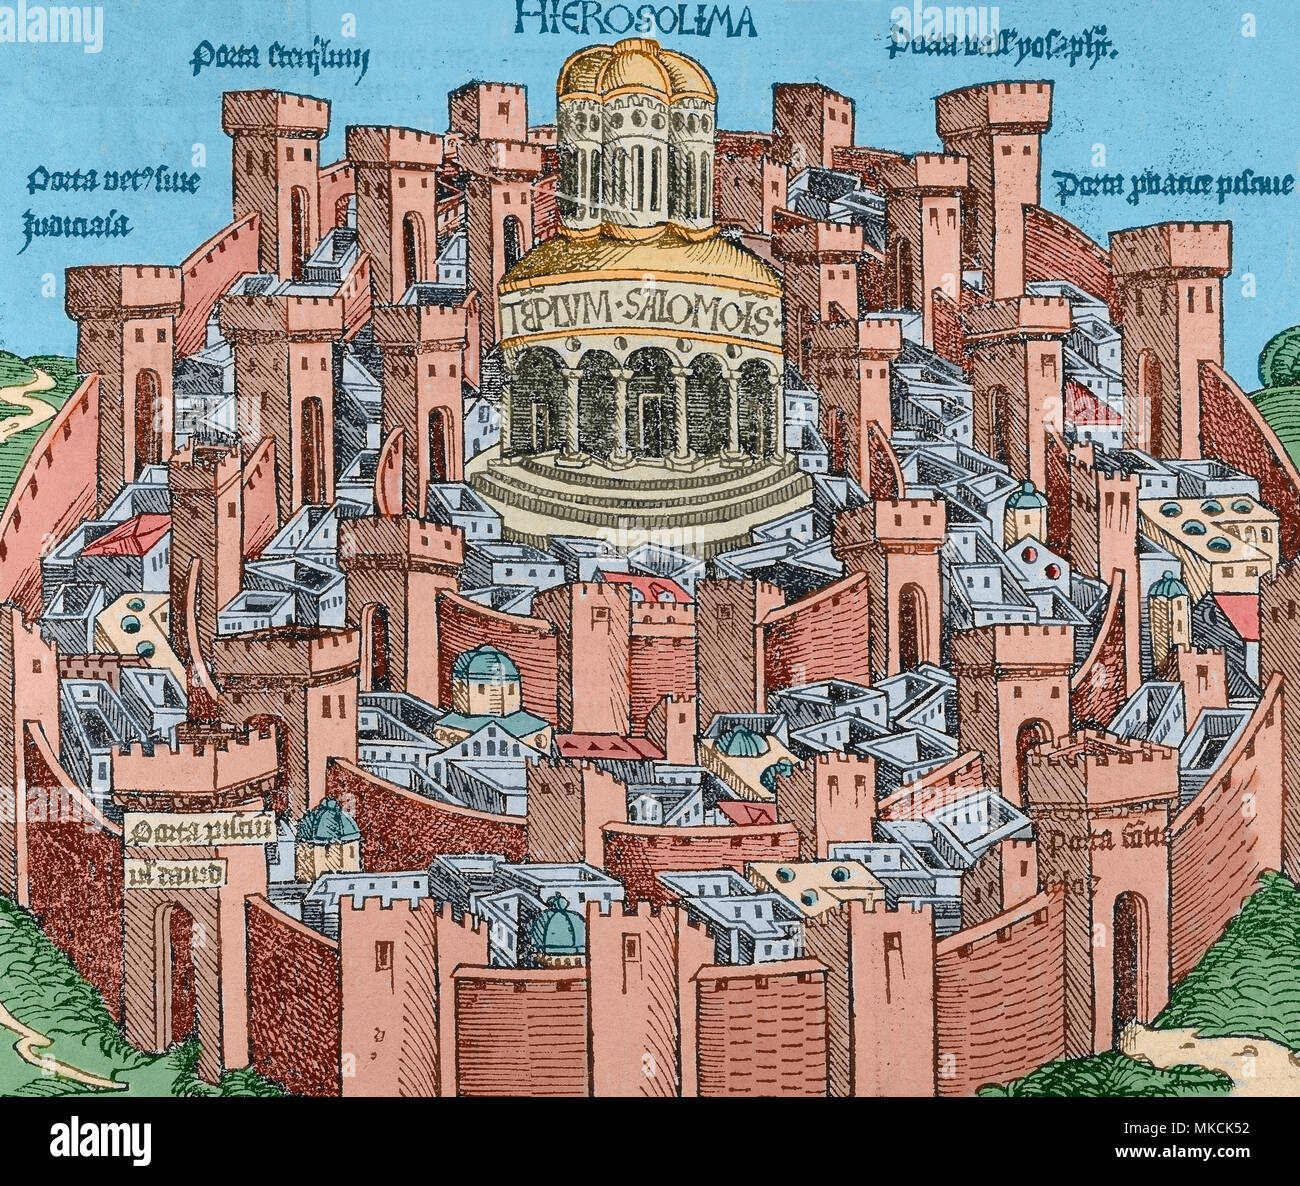 Jerusalem. Imaginary depiction of the town, with the Temple of Solomon in the center. Engraving from Nuremberg Chronicle by Hartmann Schedel, 1493. Later colouration. - Stock Image